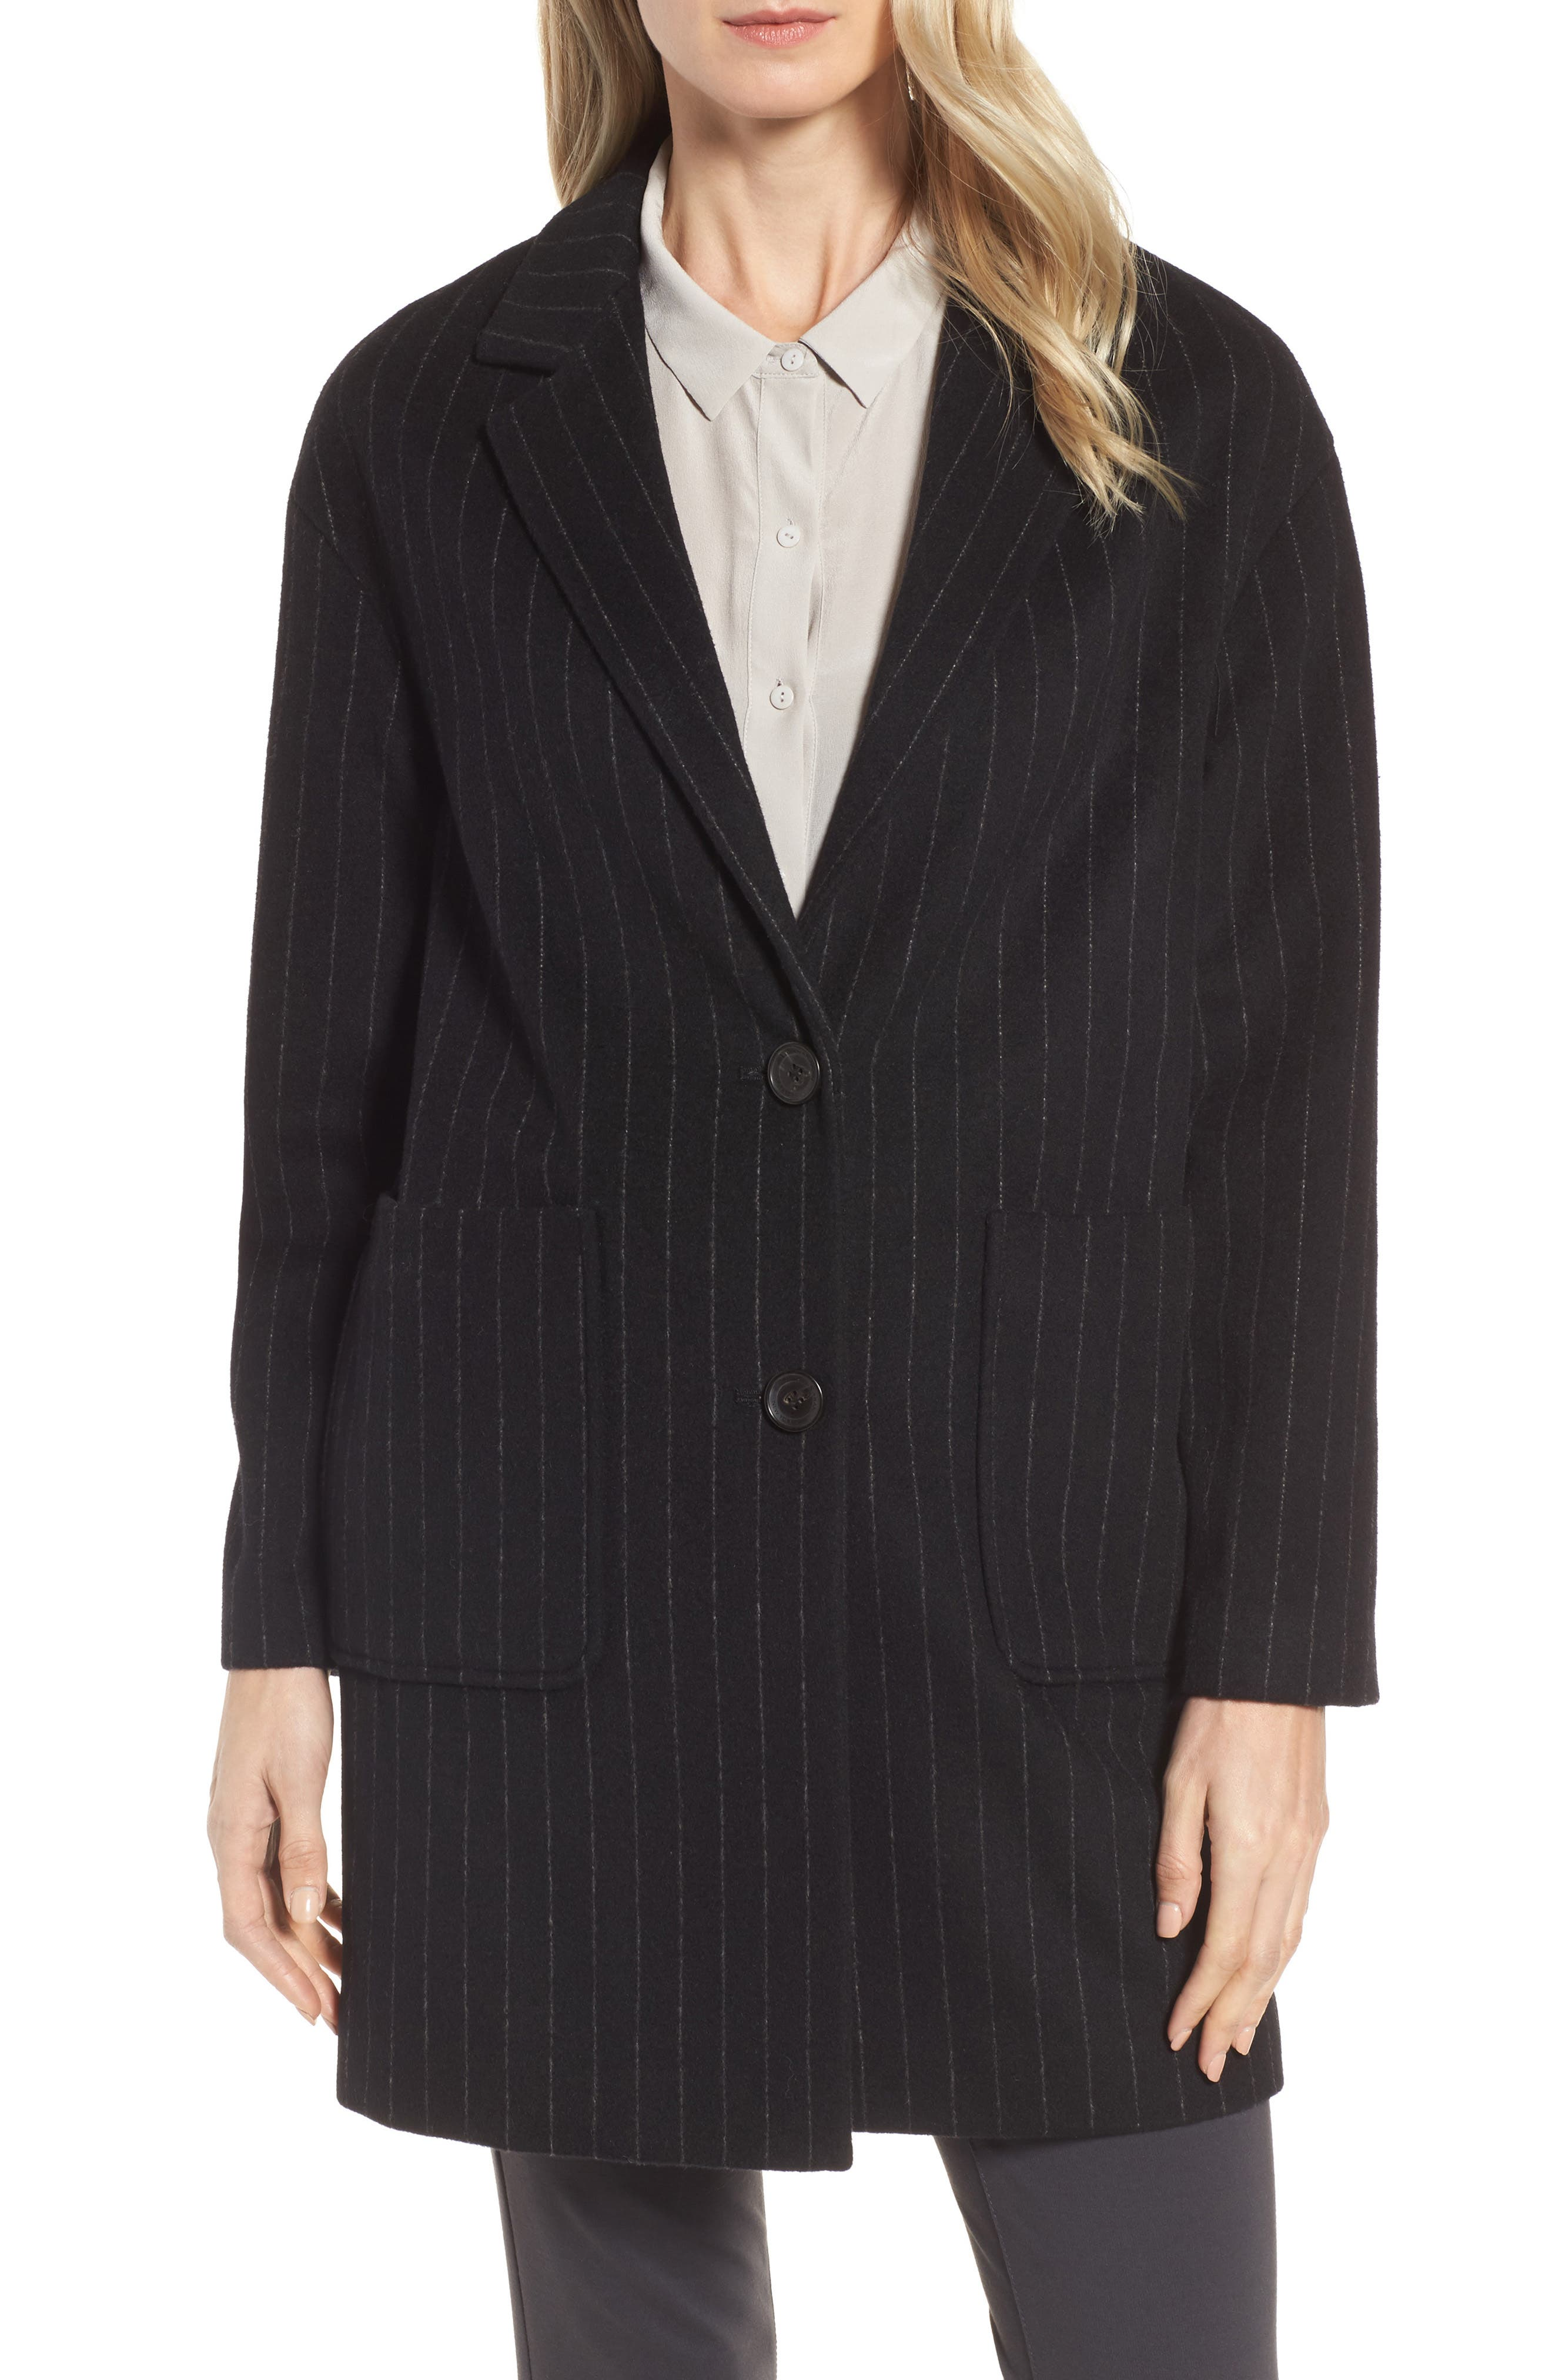 DKNY Pinstripe Wool Blend Coat,                         Main,                         color,